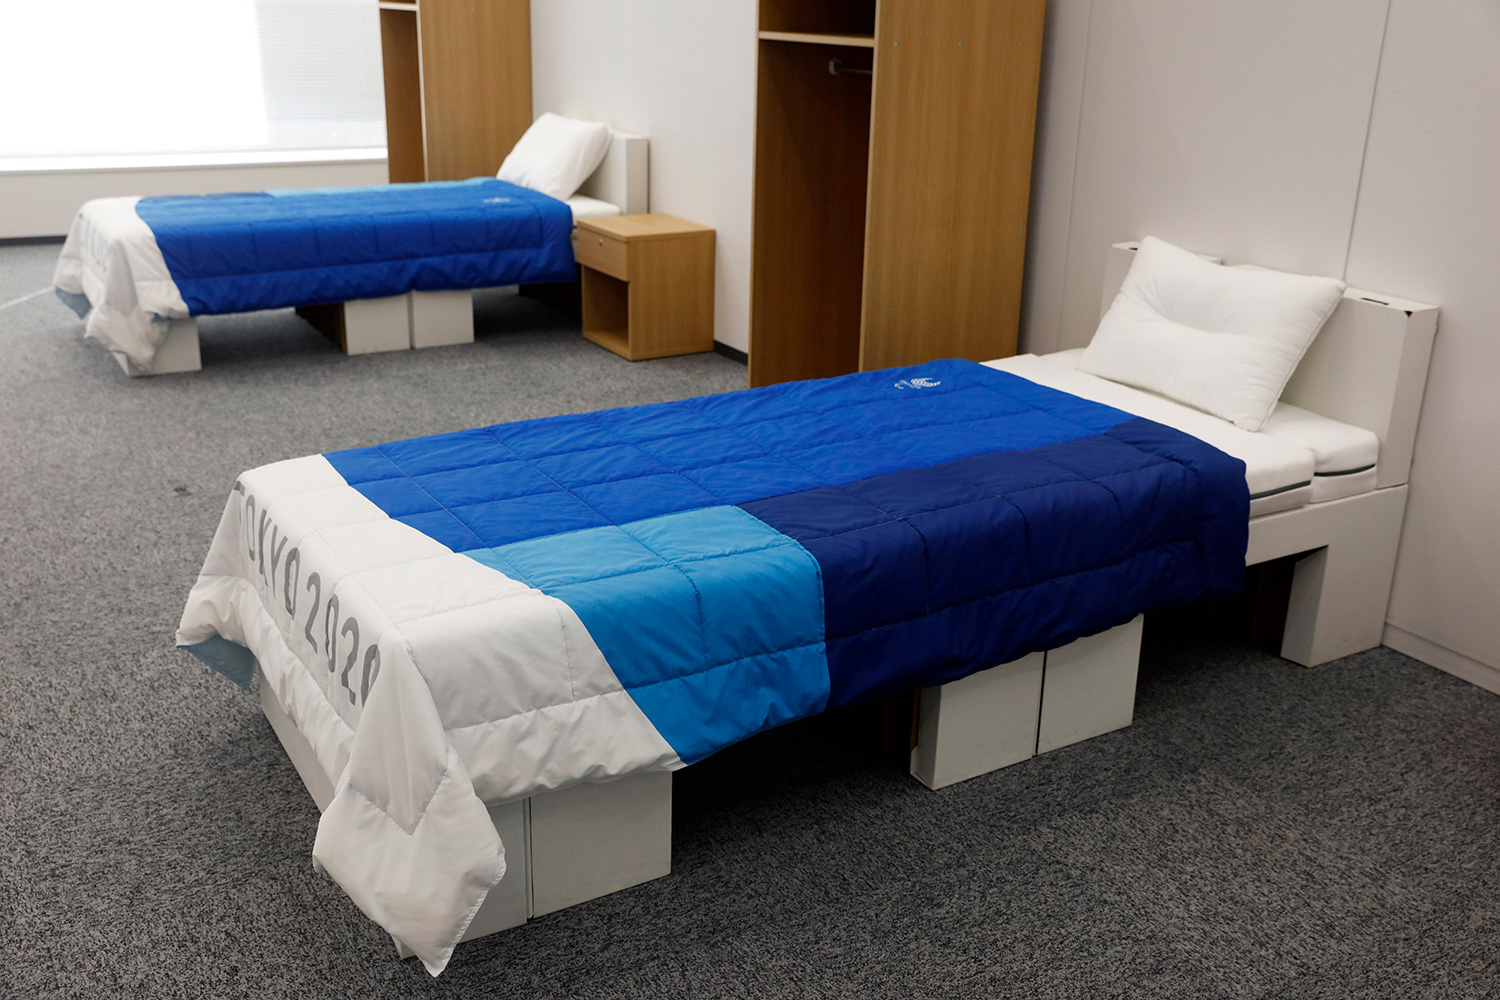 beds at the Tokyo 2020 Olympic and Paralympic Villages view 2